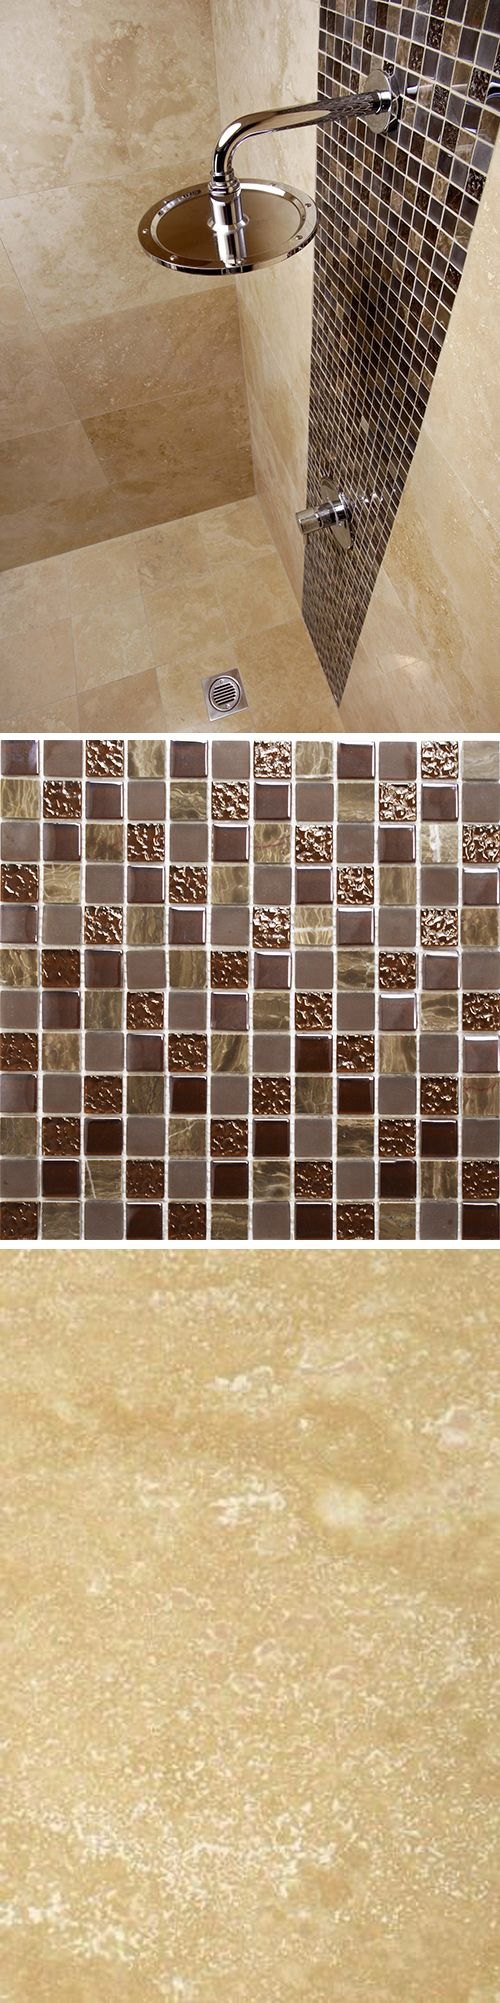 Ferrara Natural Travertine with Natural Chocolate Marble & Glass Mosaic Tiles. Using the marble & glass tiles along with the travertine adds a burst of glamour into your walls whilst keeping to luxury natural materials. This look is great as a splash back or feature point in any bathroom or kitchen! The perfect match - Order samples if you don't believe us to see the true beauty of these tiles... - Dream Homes